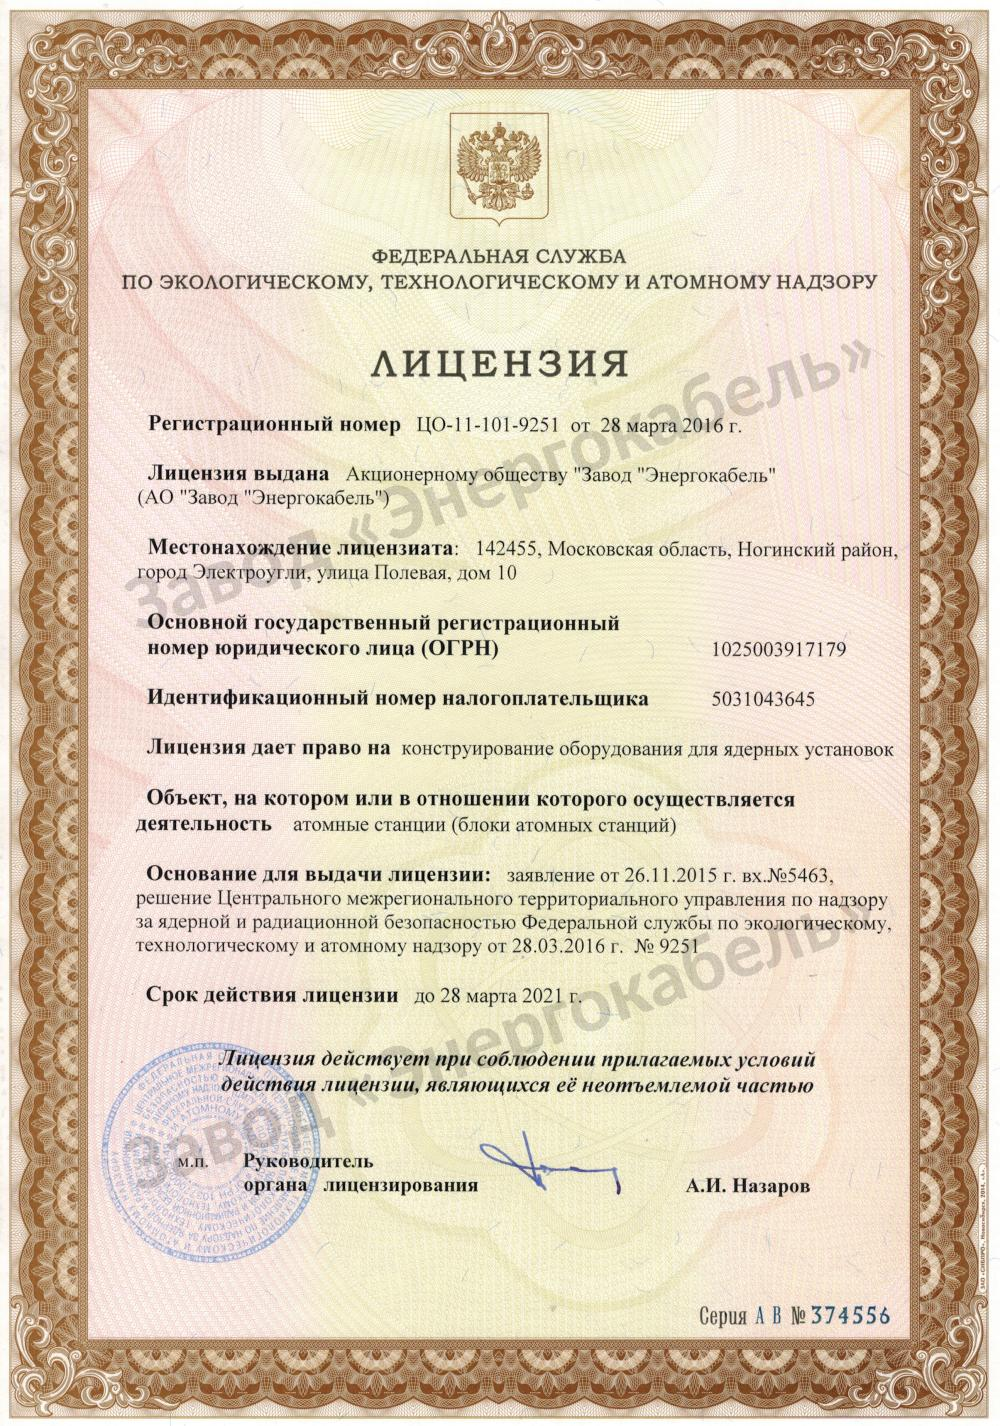 License for the design of the equipment for nuclear units at nuclear power plants